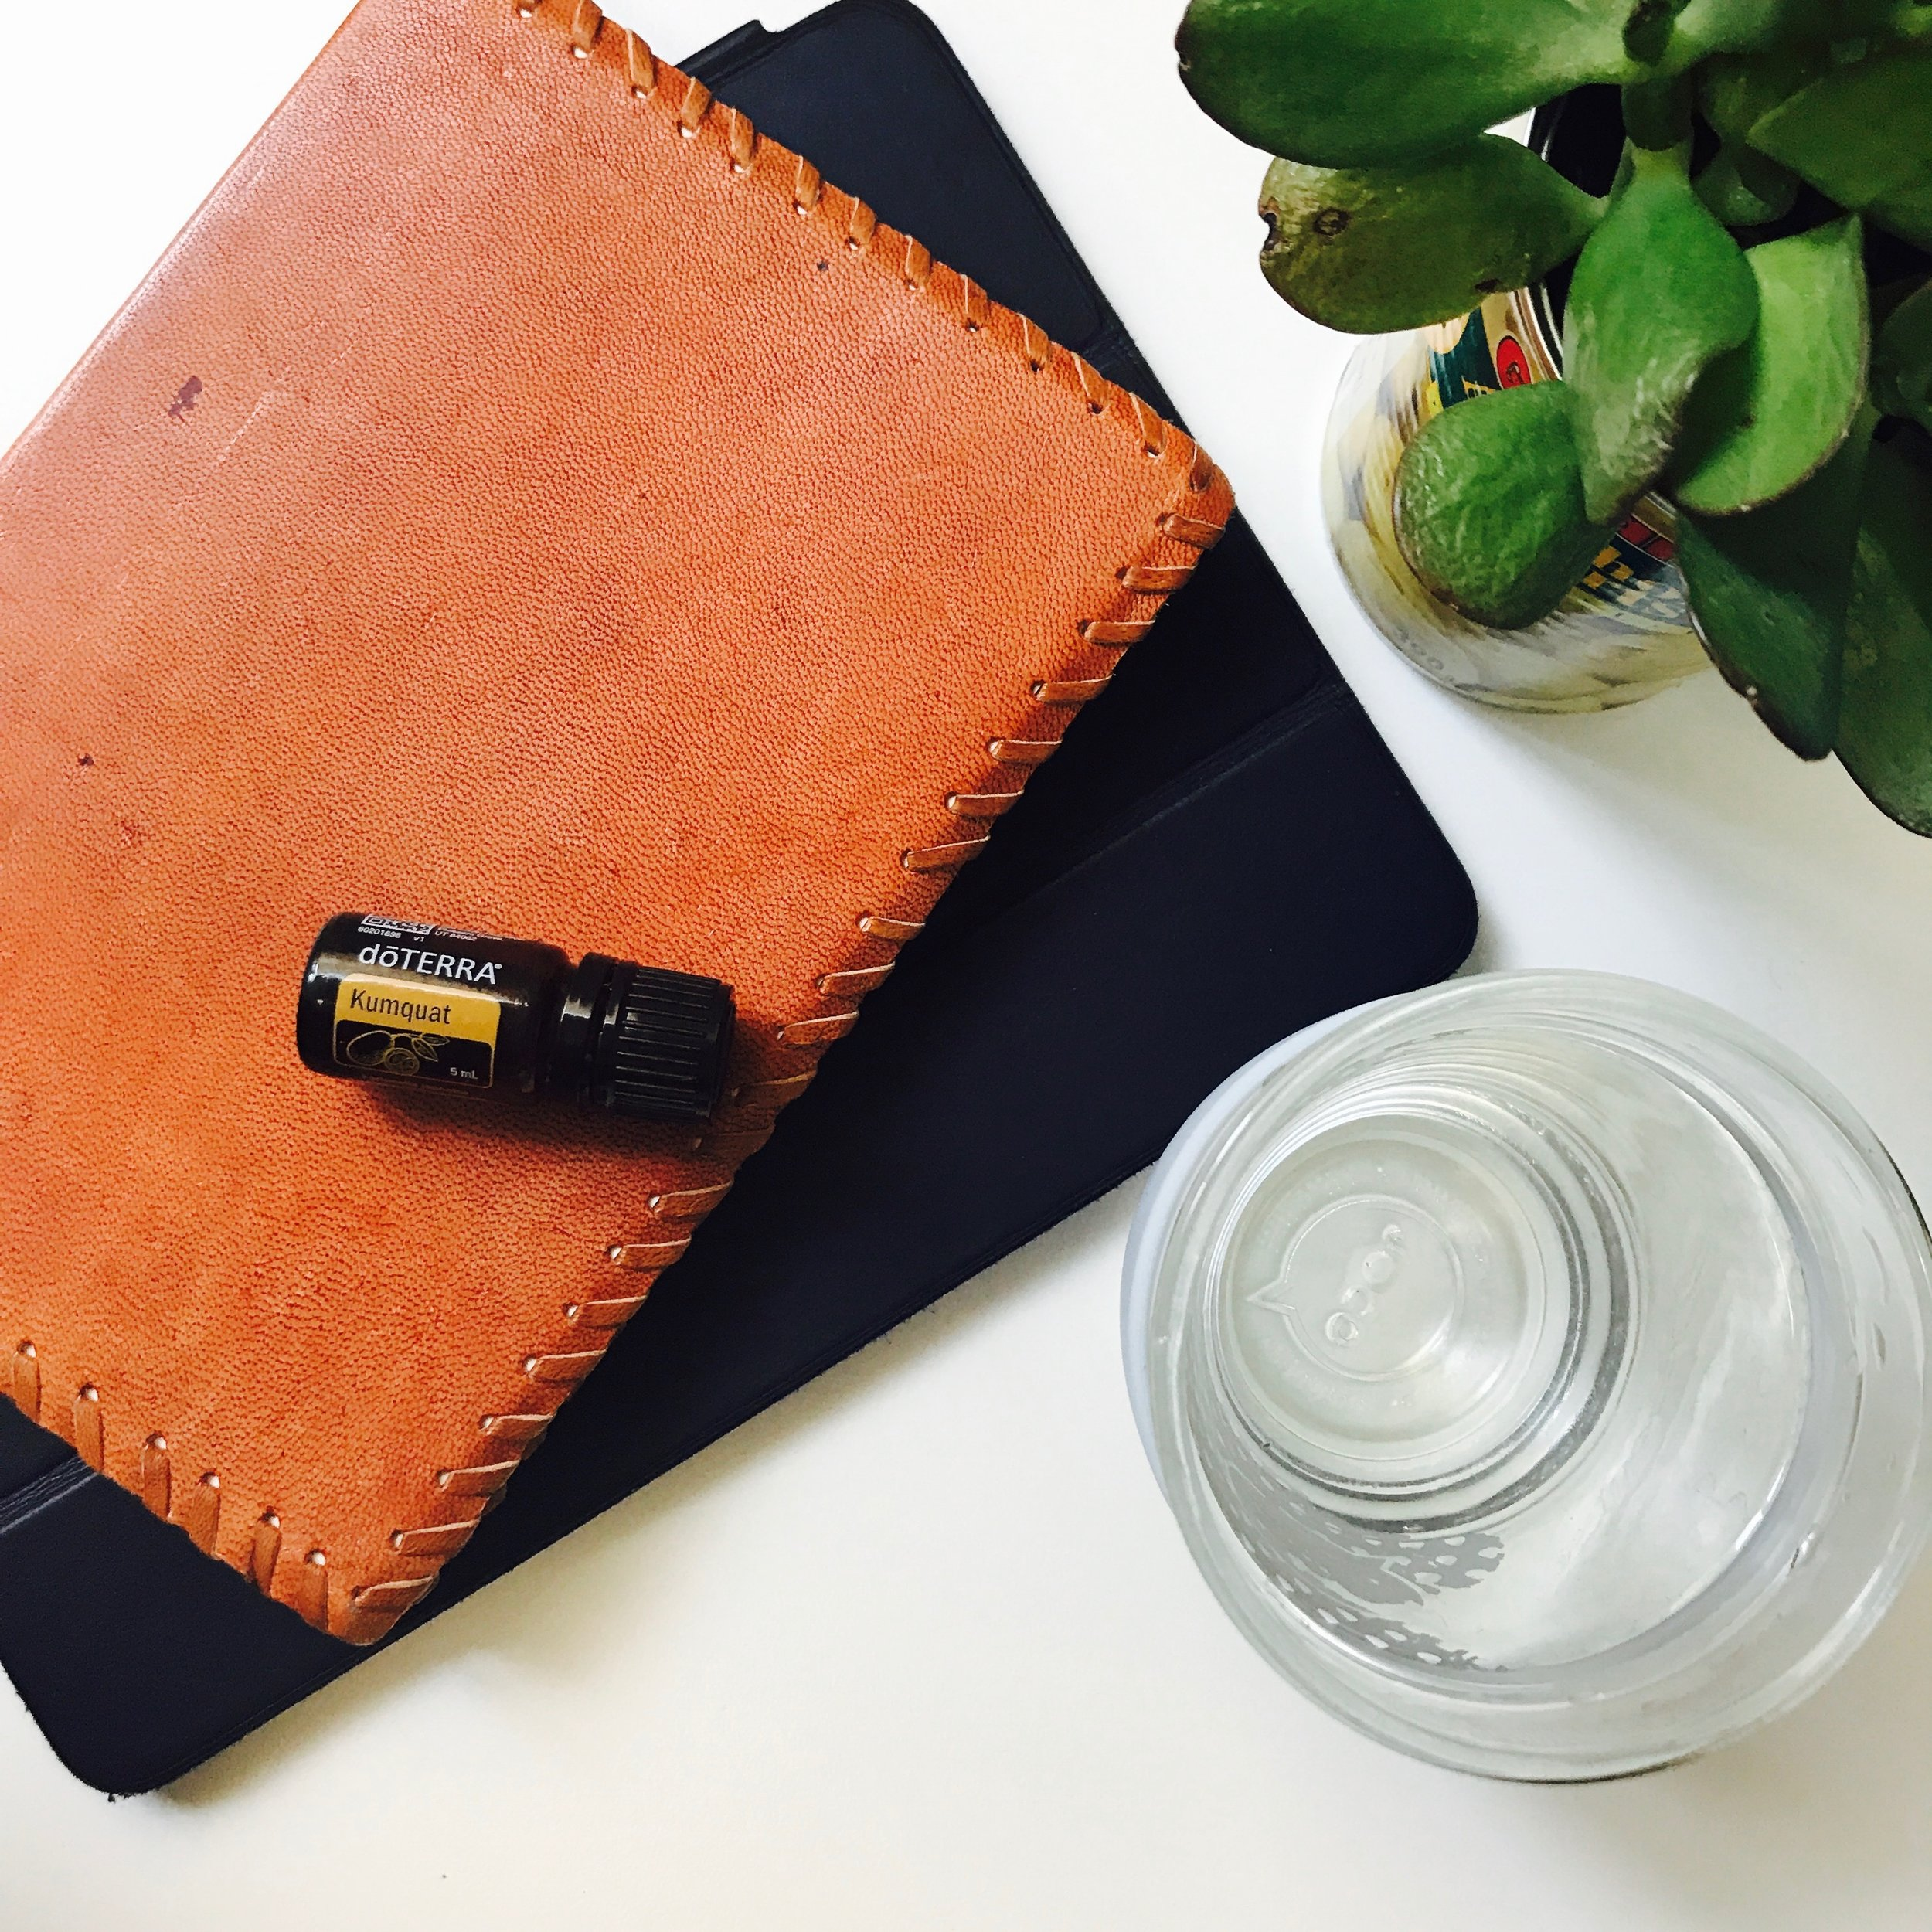 Kumquat doterra essential oil yoga teacher website builder.jpg